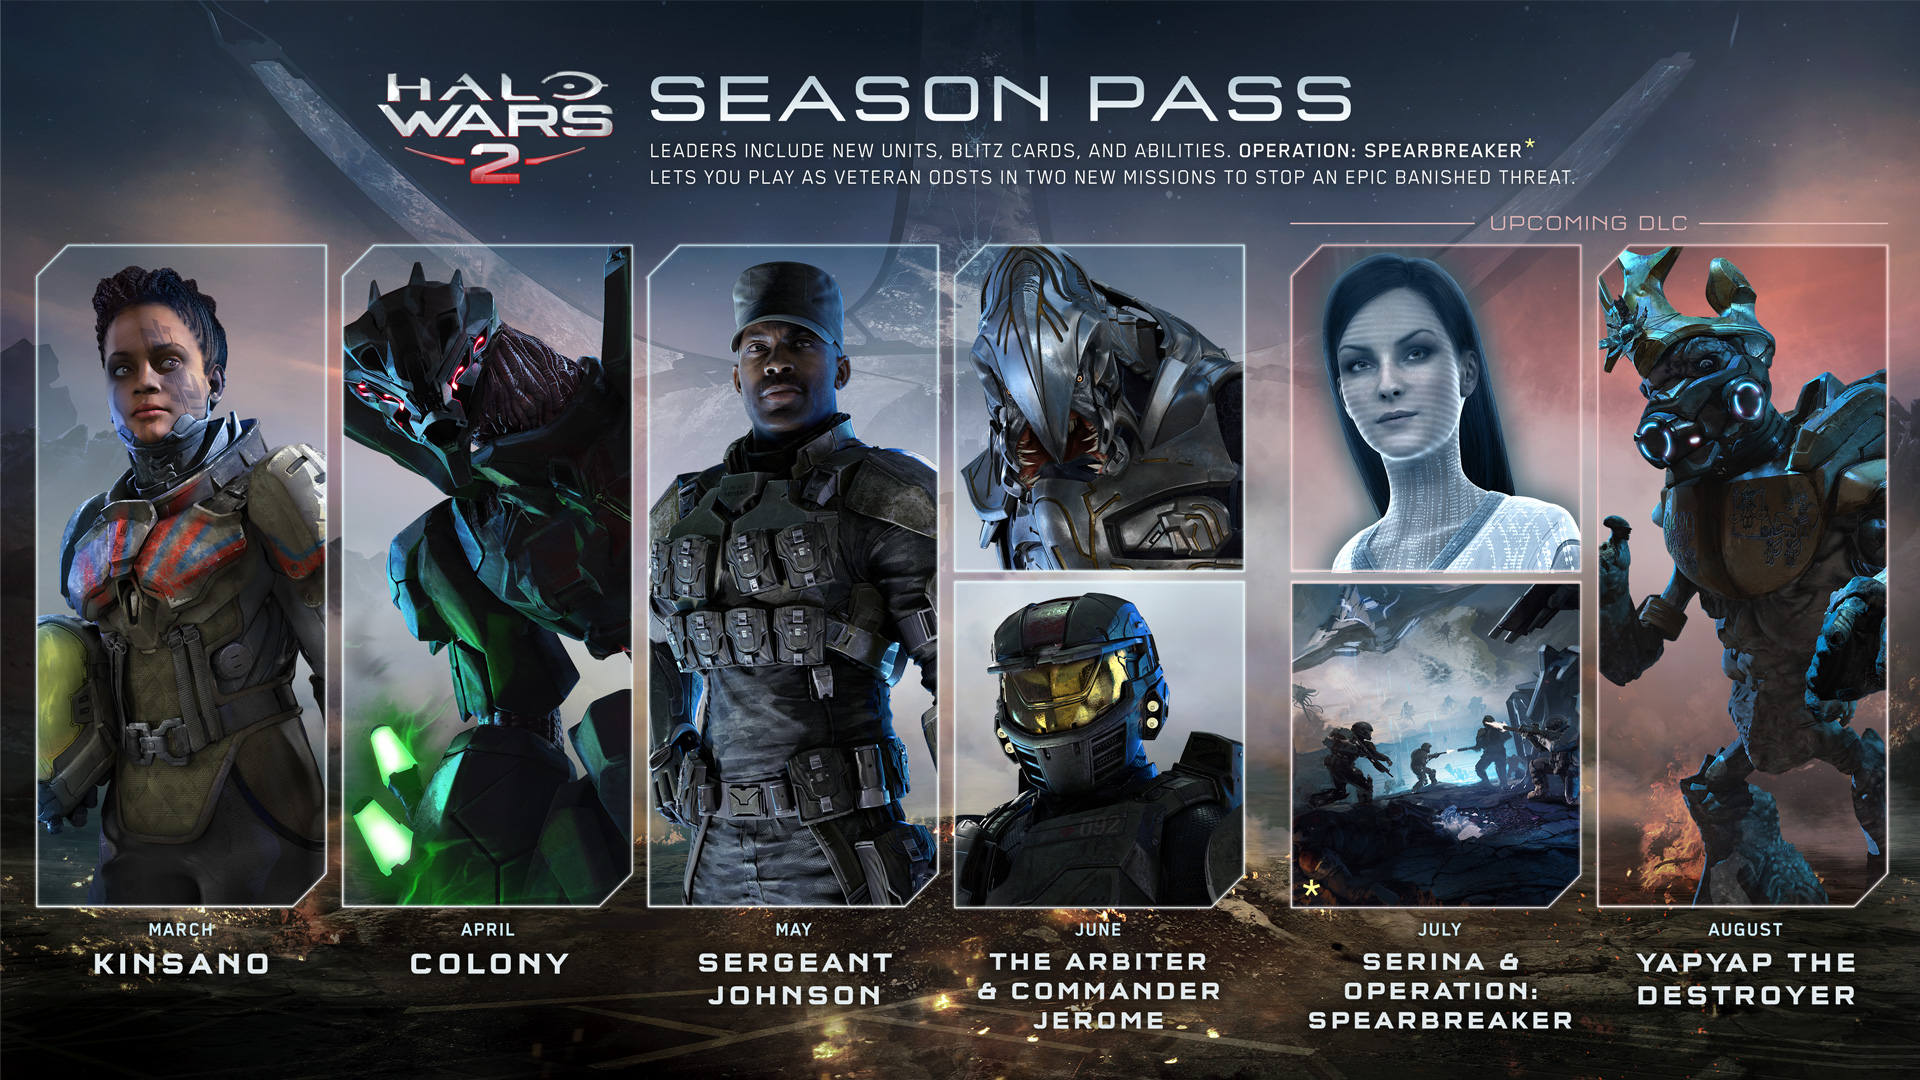 chequea-los-ultimos-lideres-del-season-pass-halo-wars-2-frikigamers.com